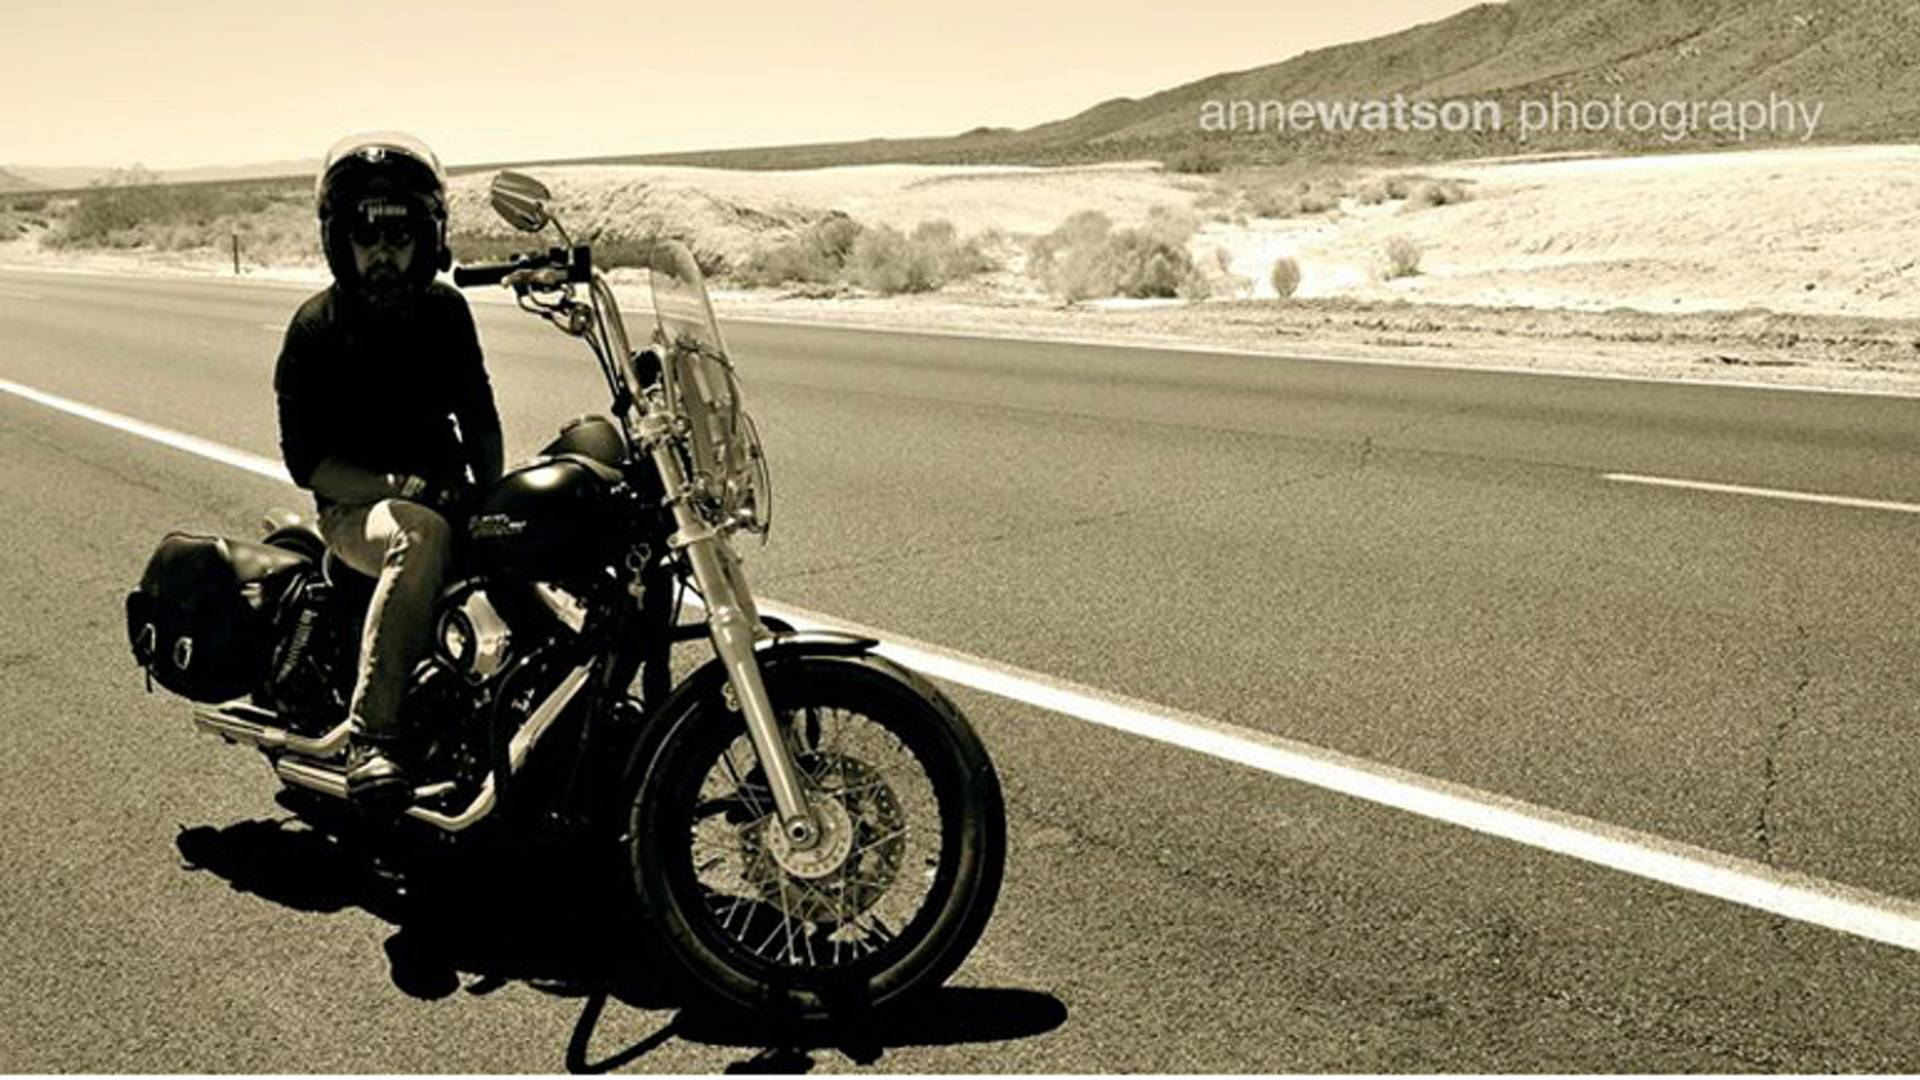 Why I Ride A Slow, Uncomfortable, Unreliable, Noisy Motorcycle